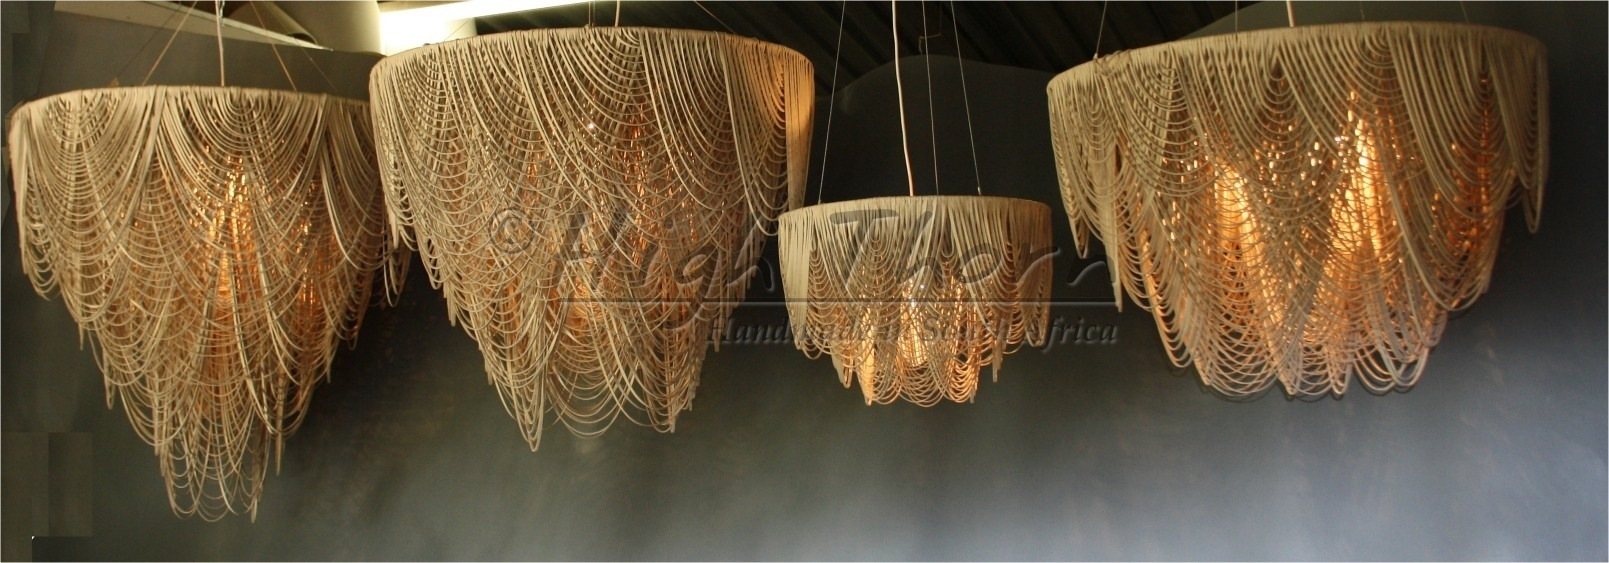 High Thorn Handmade In South Africa Lighting